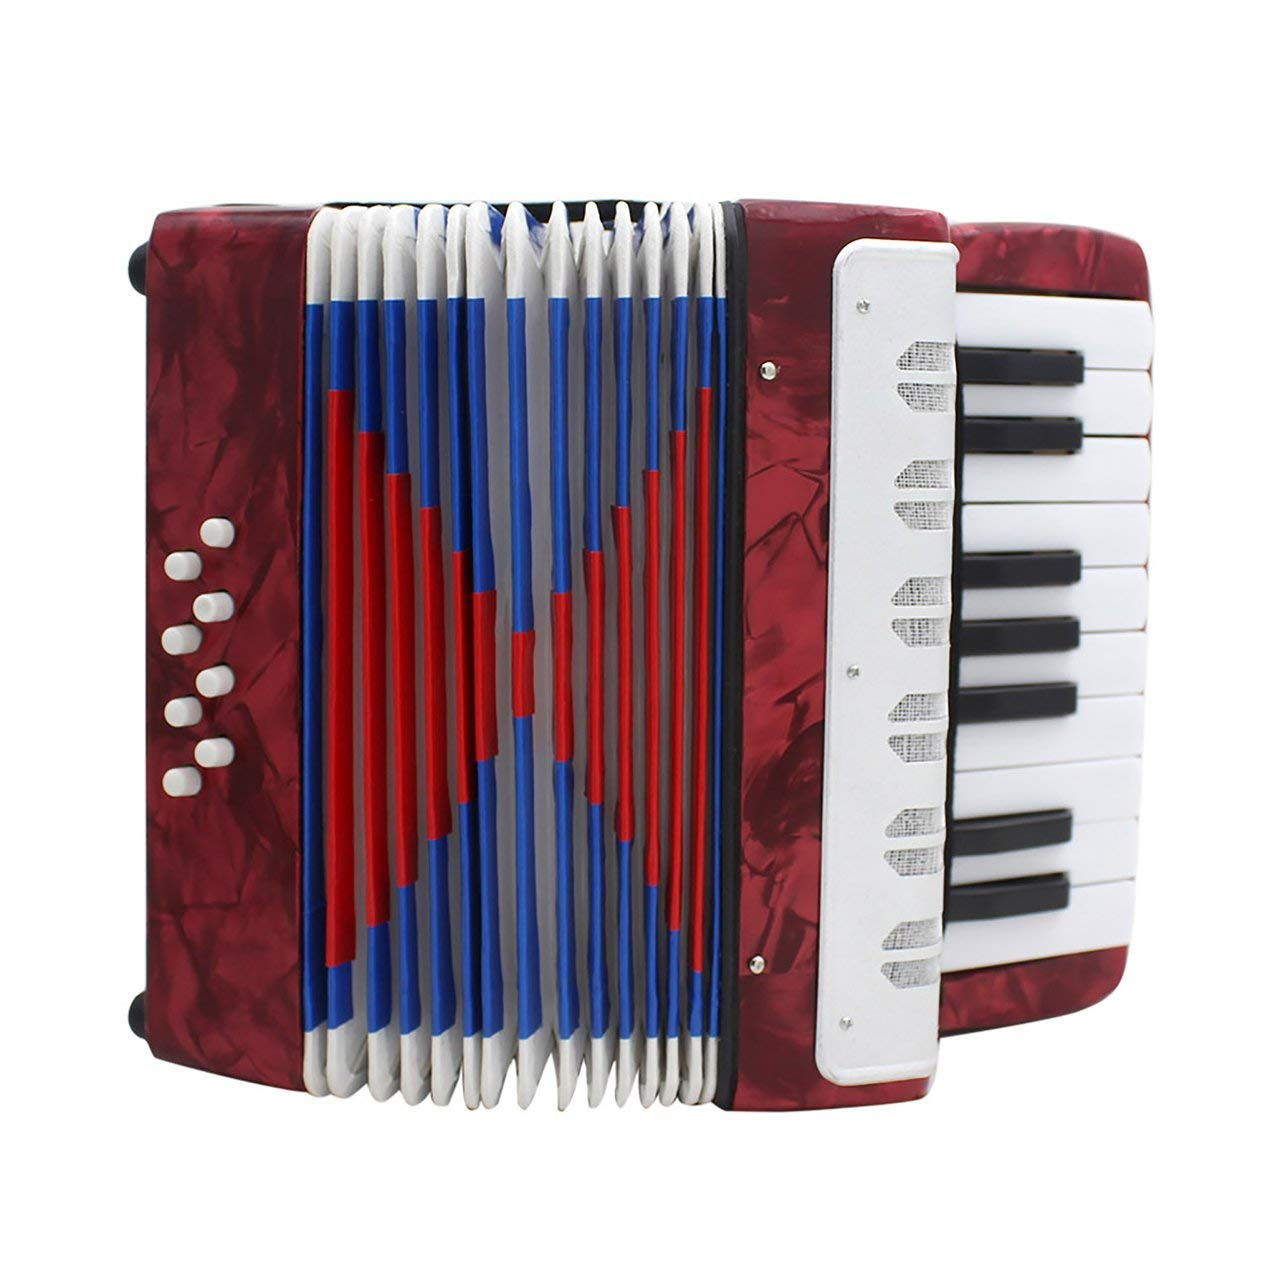 17-Key 8 Bass Accordion Musical Toy for Educational Musical Instrument Simulation Learning Concertina Rhythm by Fashinlook (Image #8)